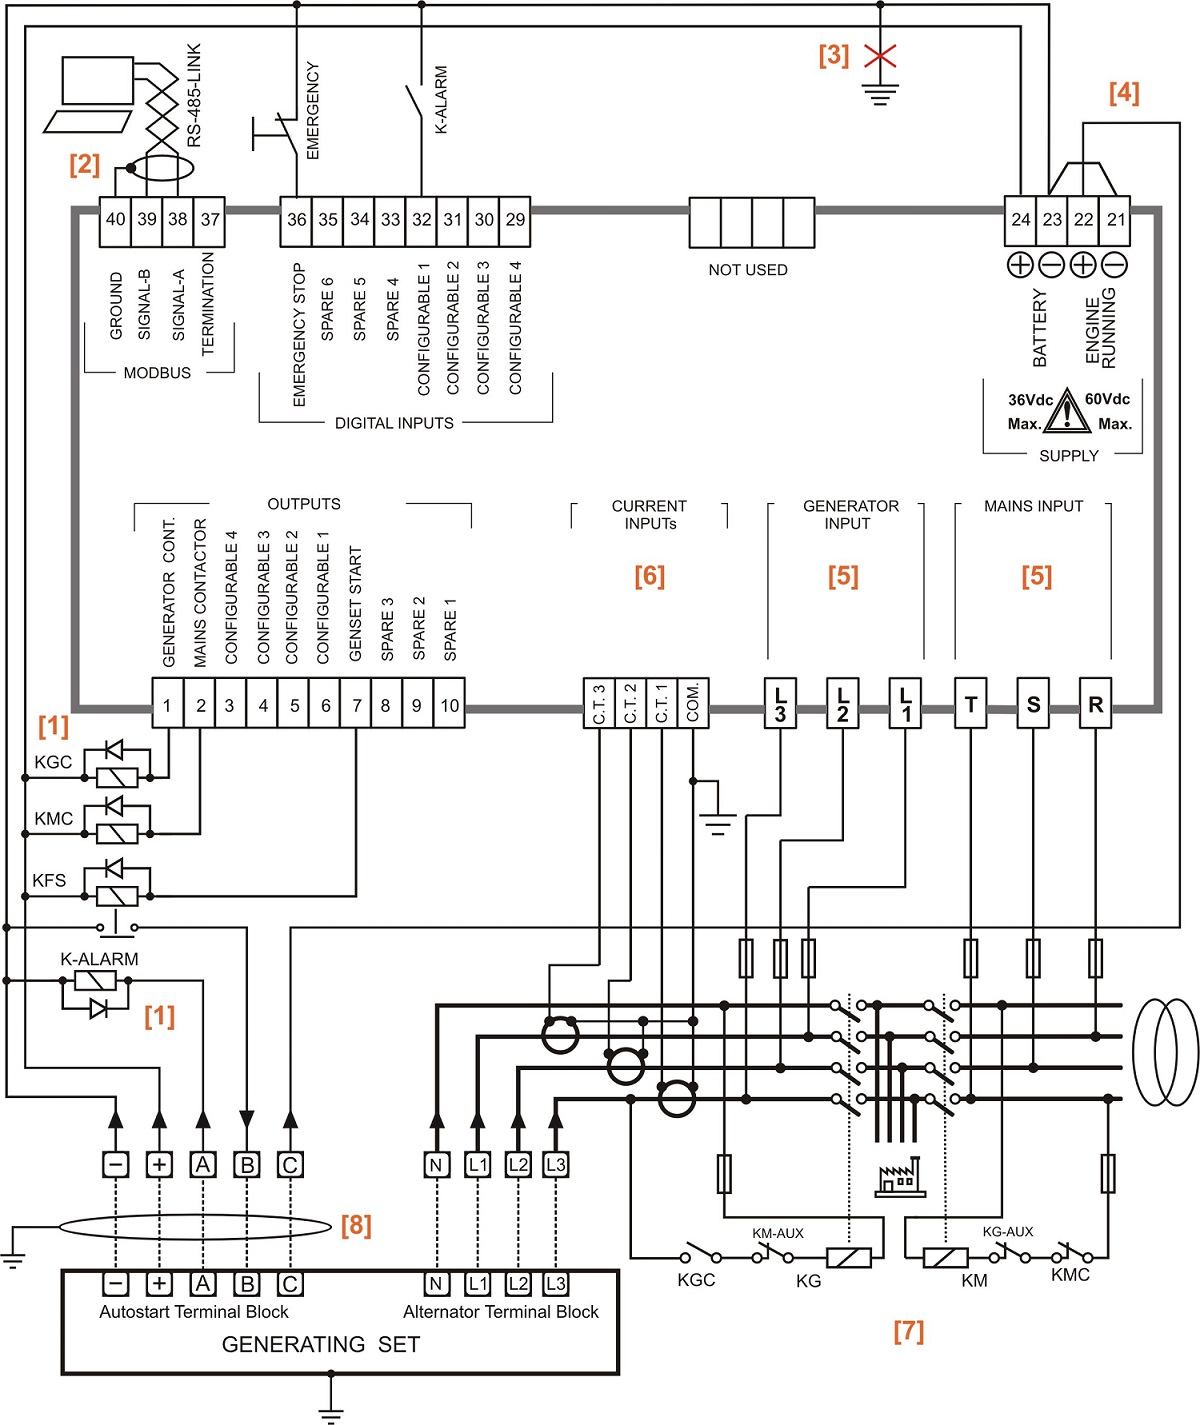 Be28 Automatic Transfer Switch Controller Connections ats wiring drawing ats wire diagram 3 \u2022 wiring diagrams j squared co 4-pole transfer switch wiring diagram at gsmportal.co